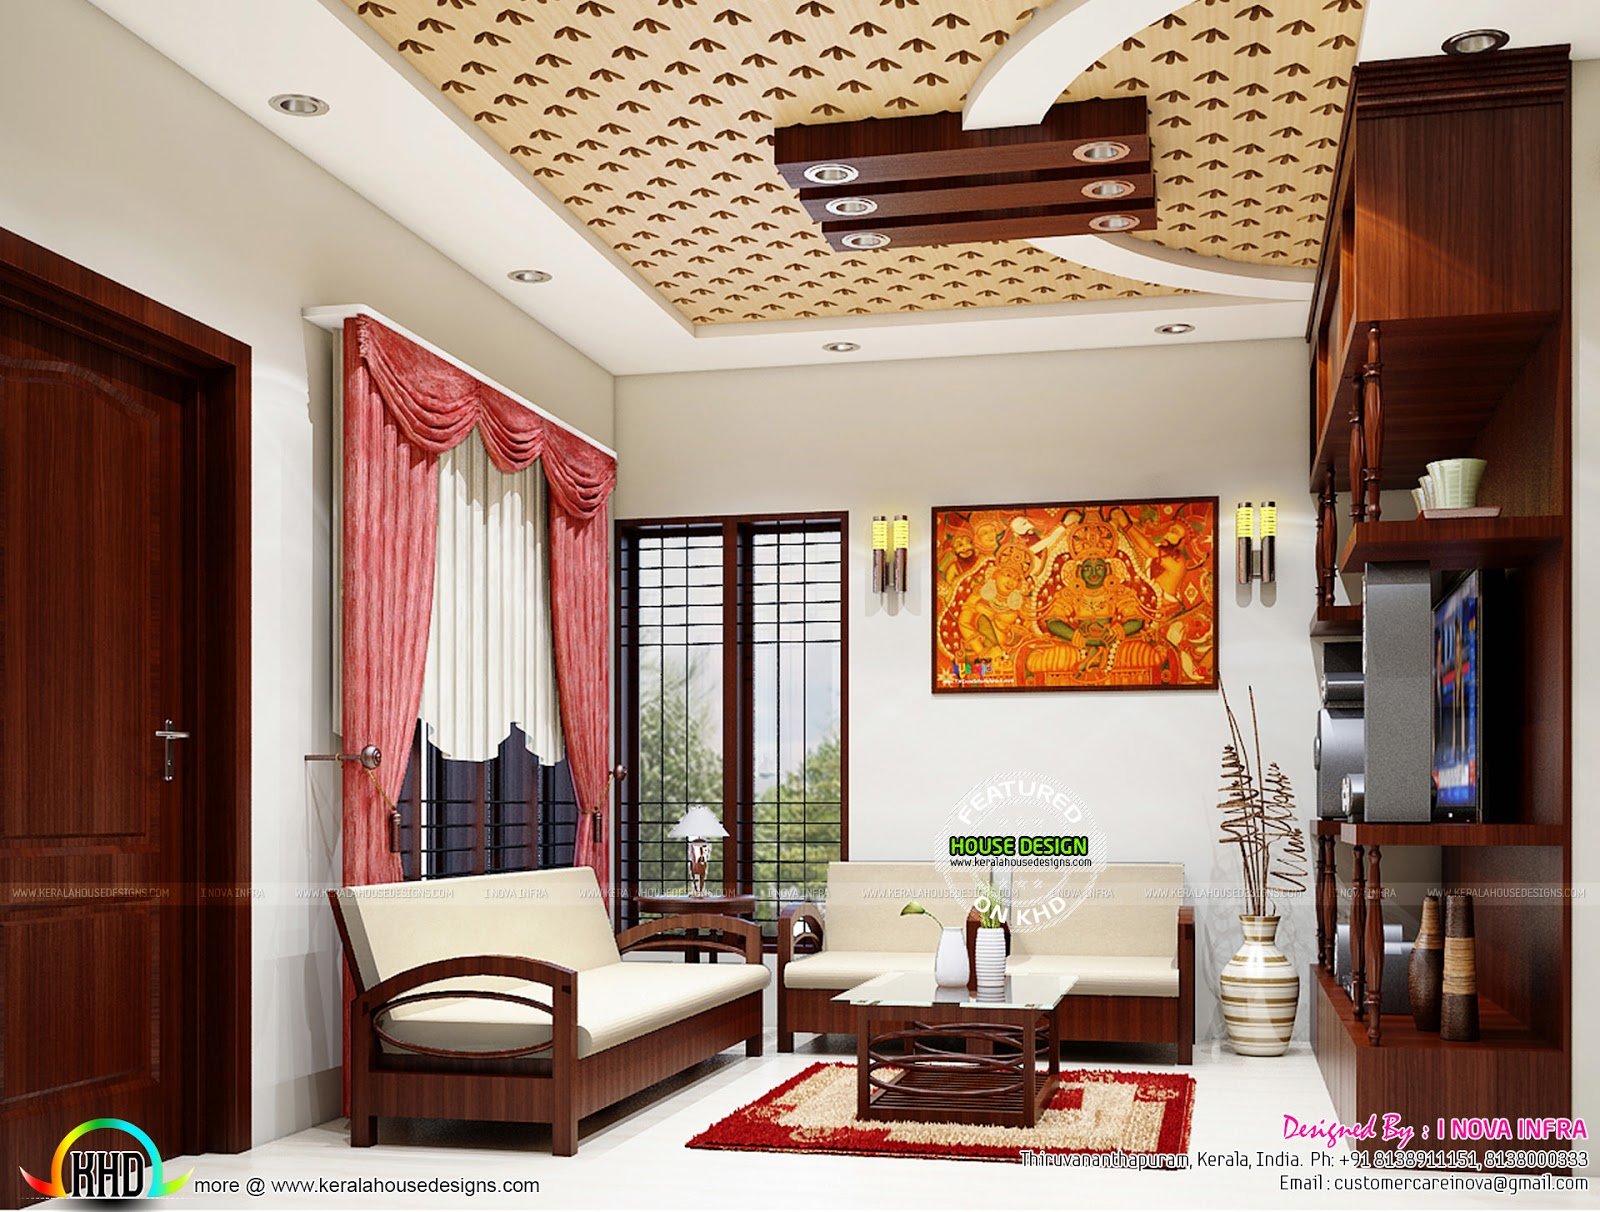 Kerala traditional interiors kerala home design and for Home interior decoration images